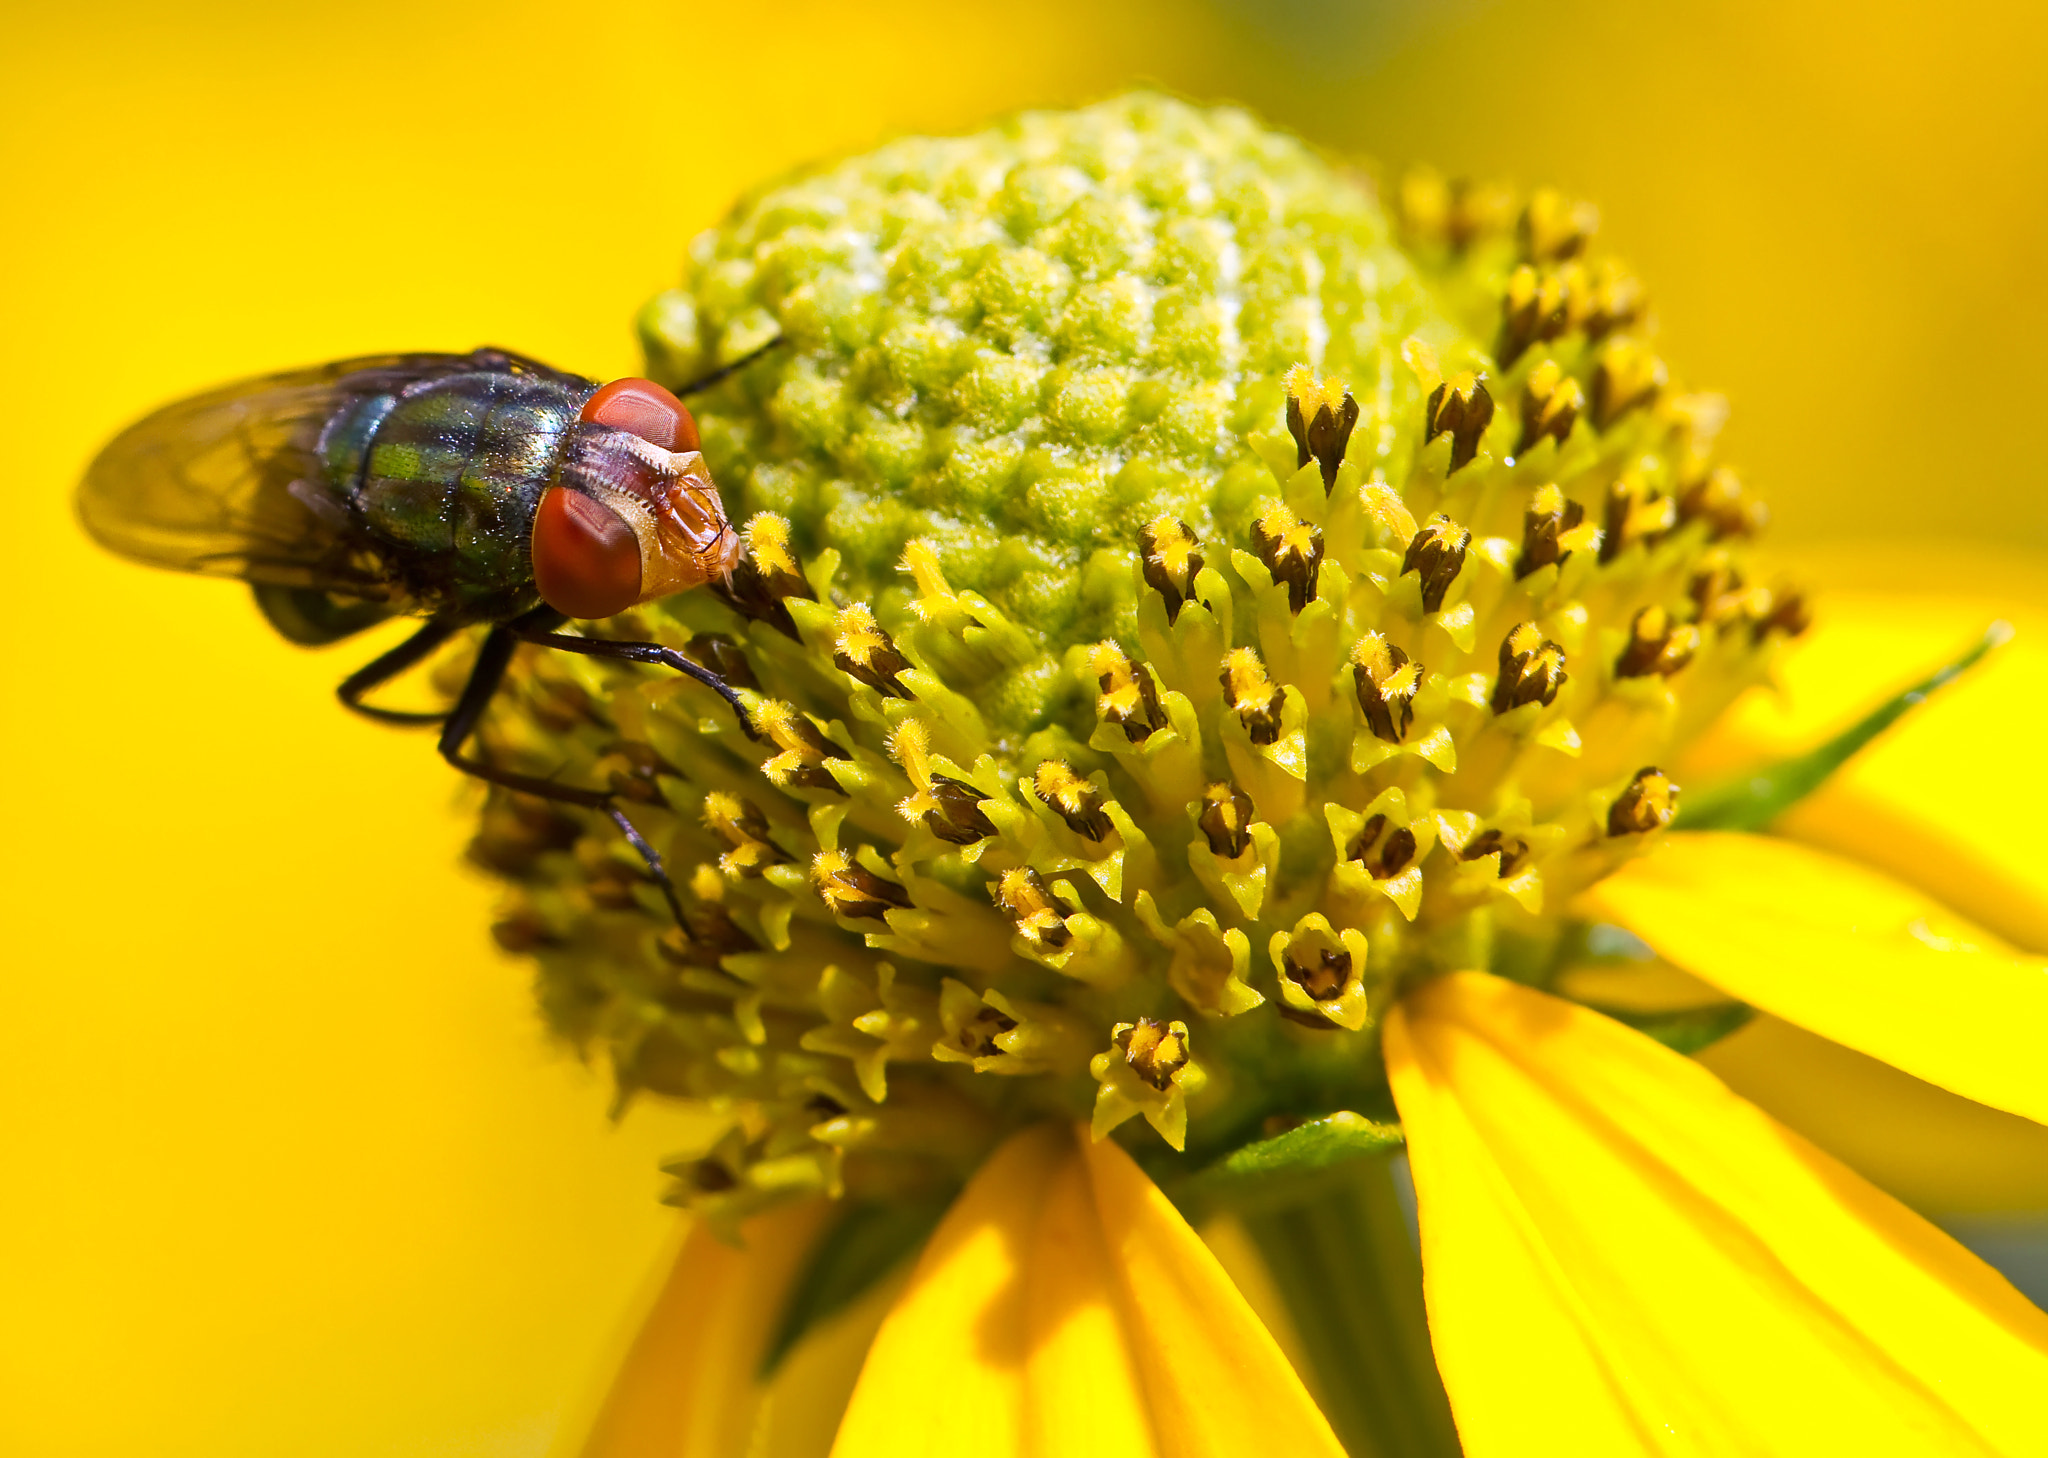 Photograph Fly On Flower by Lorraine Hudgins on 500px